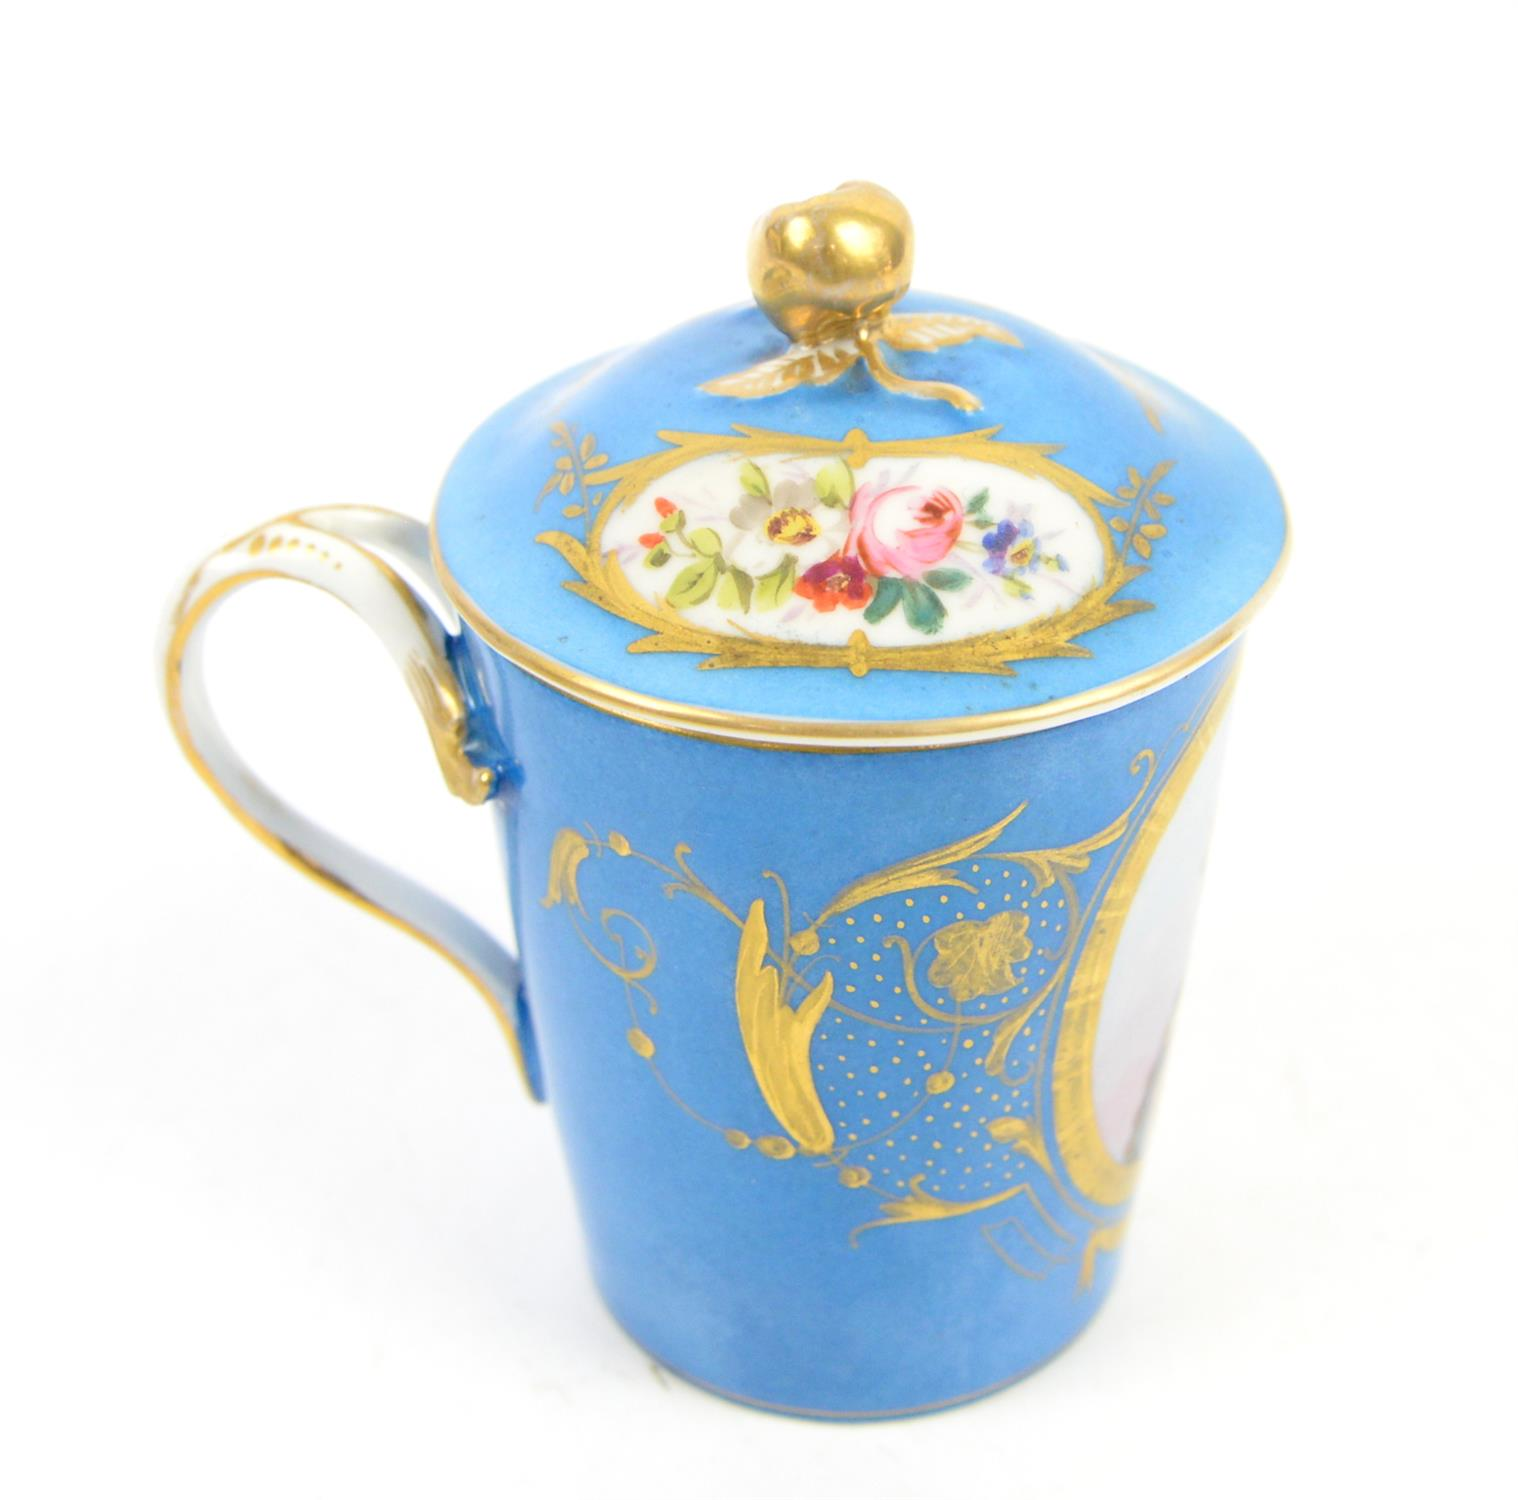 """Early 19th century Sevres """"Bleu Celeste"""" milk cup with cover and saucer, decorated with a portrait - Image 2 of 5"""